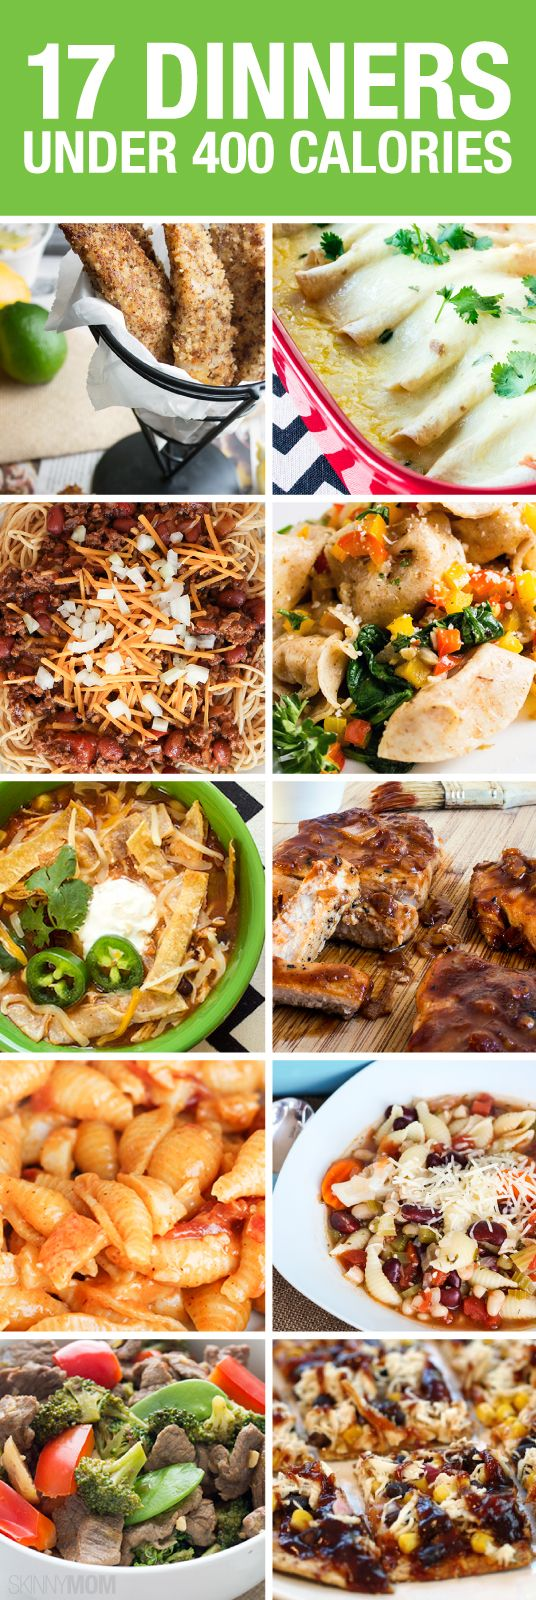 14 Healthy 400-Calorie Dinners